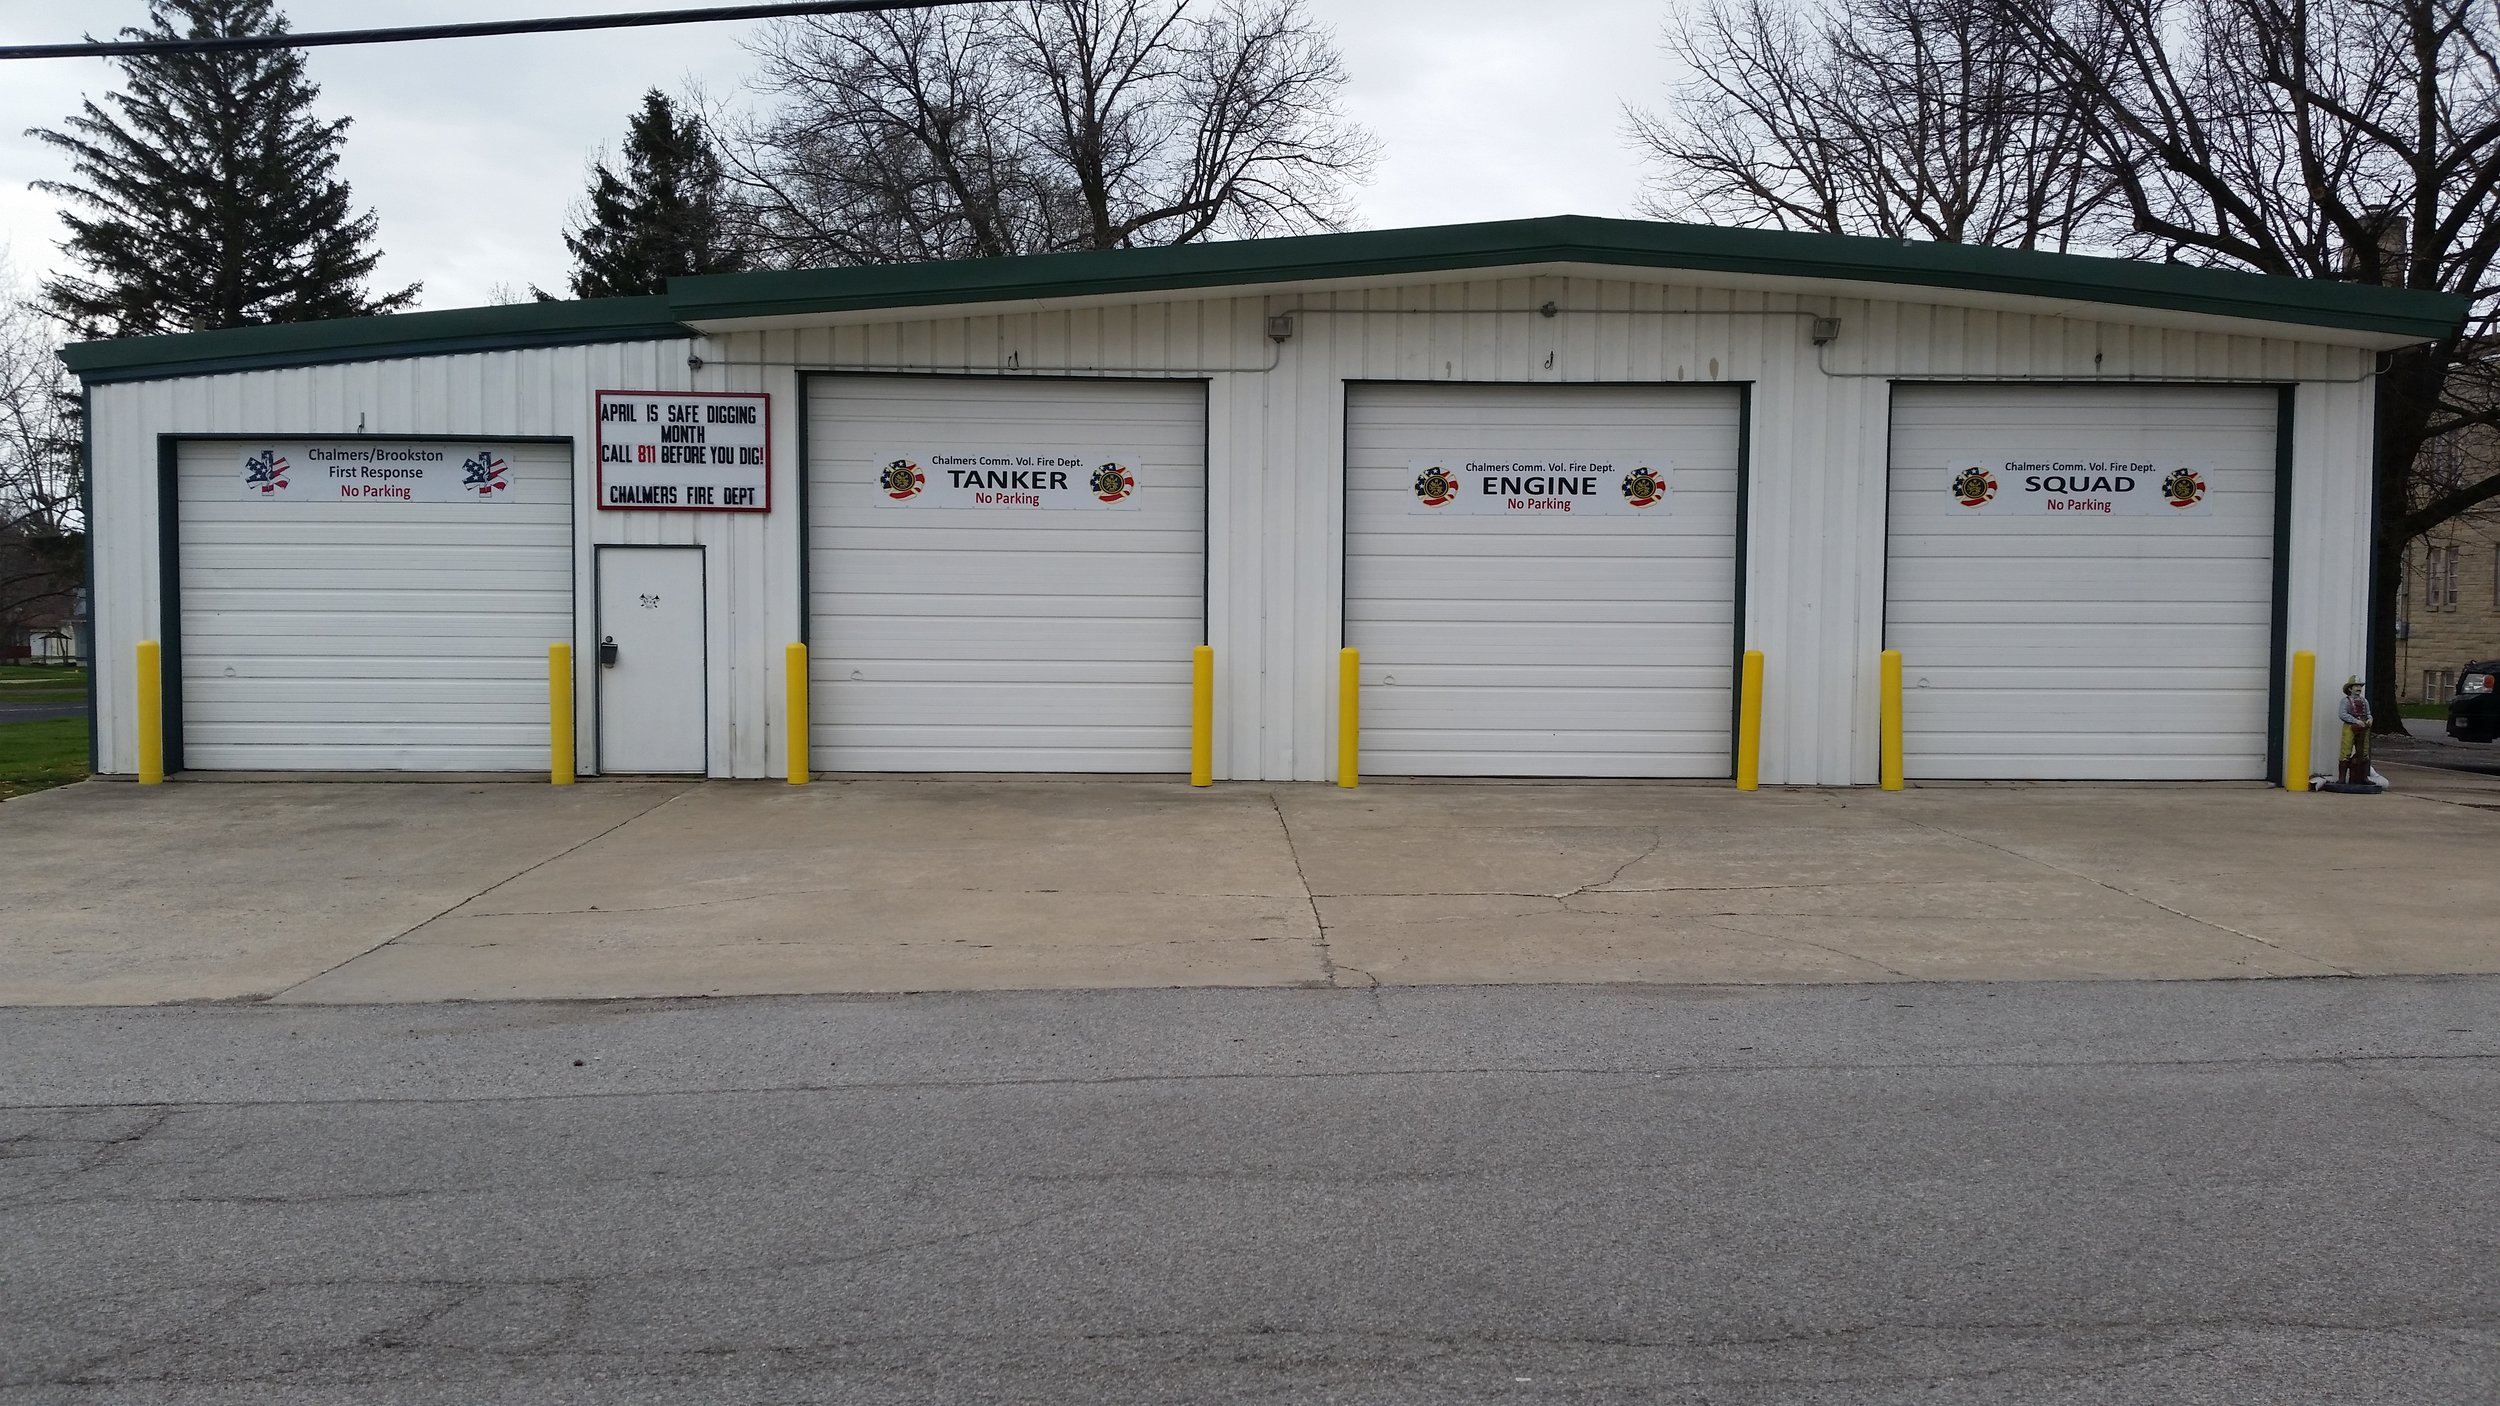 Chalmers Comm. Vol. Fire Department